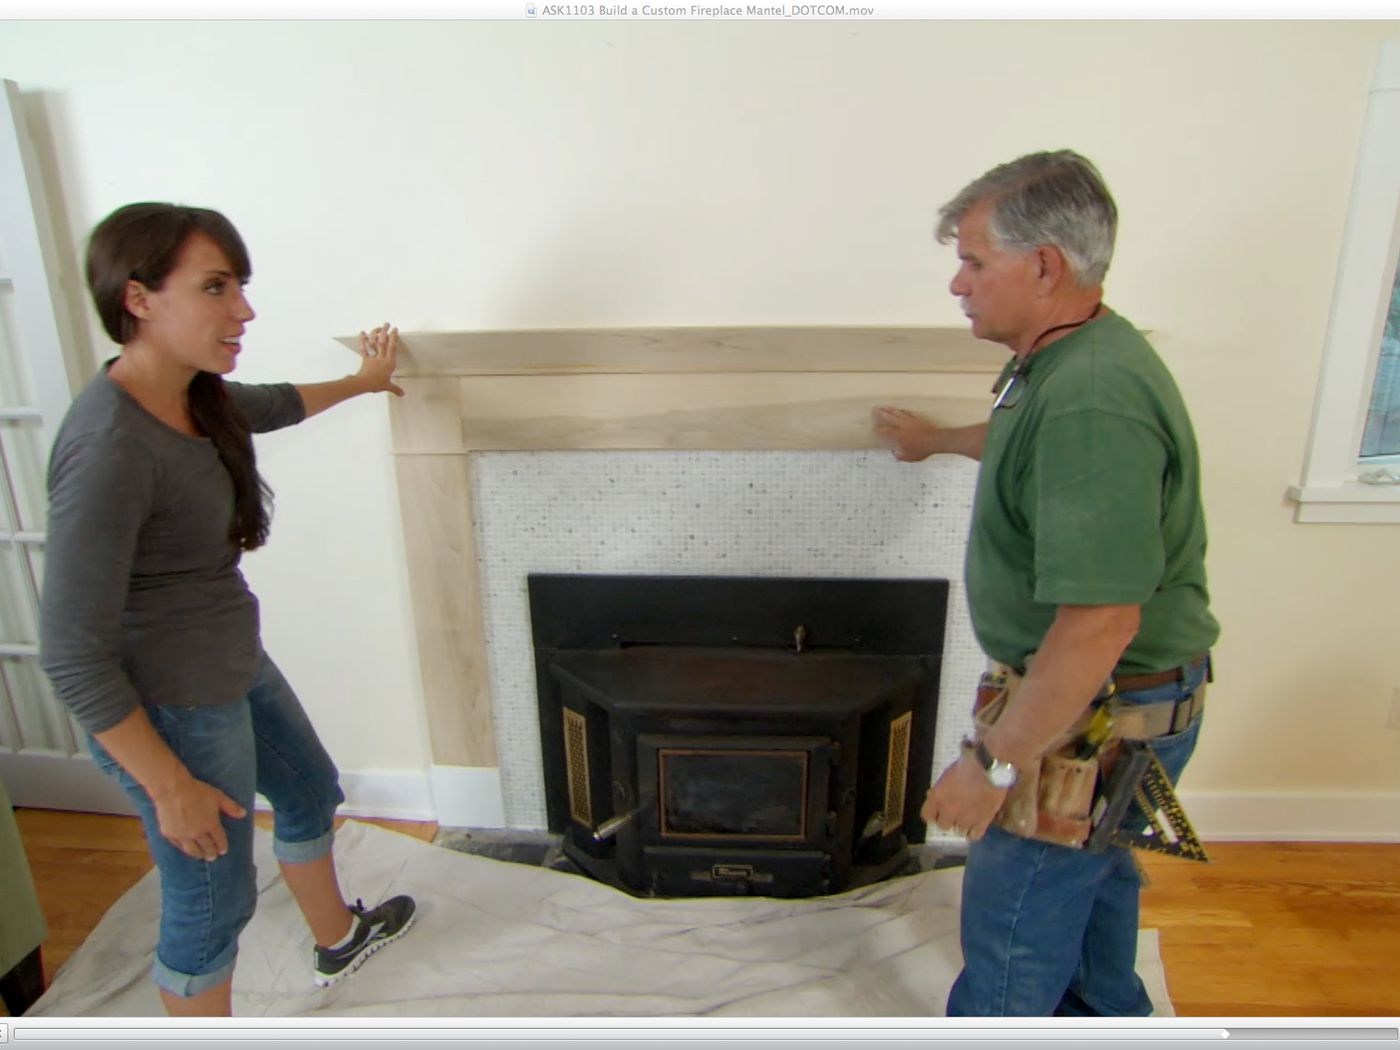 How To Build A Custom Fireplace Mantel This Old House